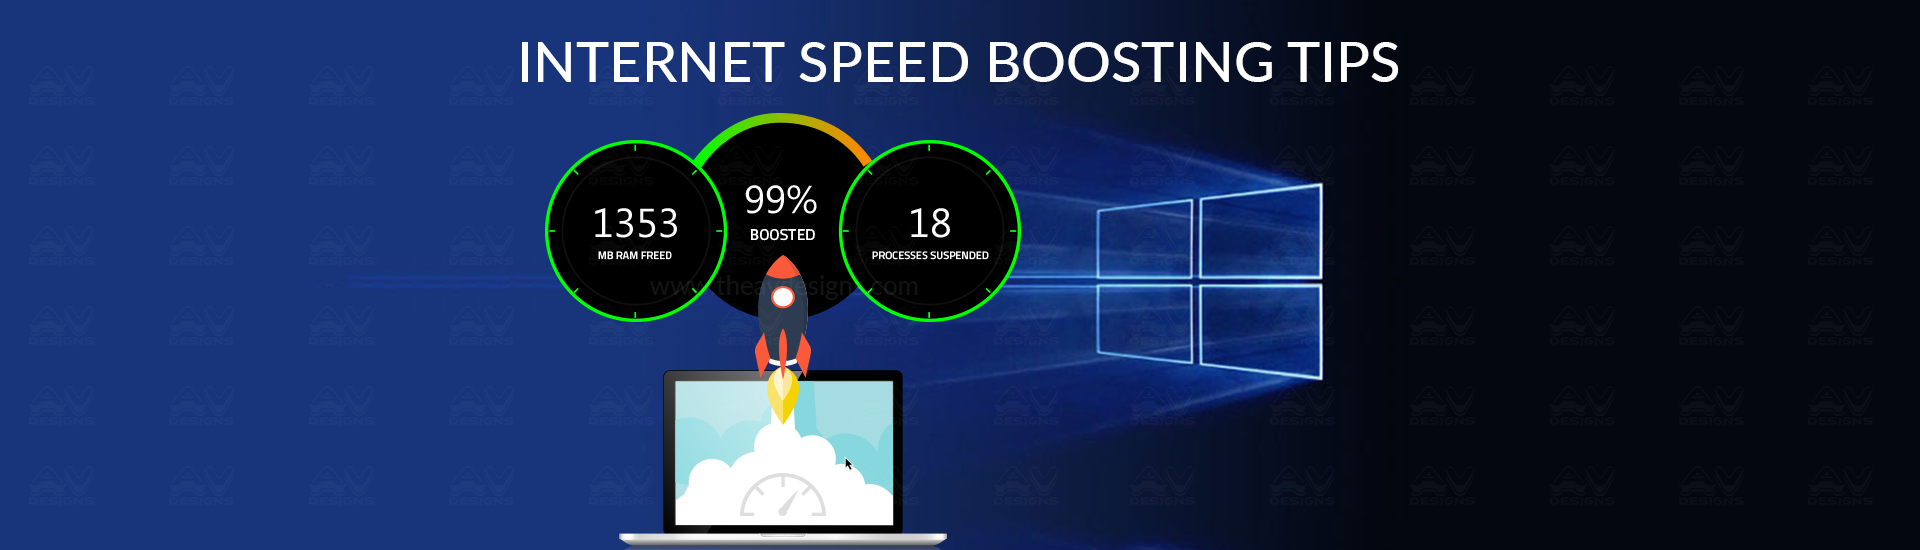 how to speed up internet download speed